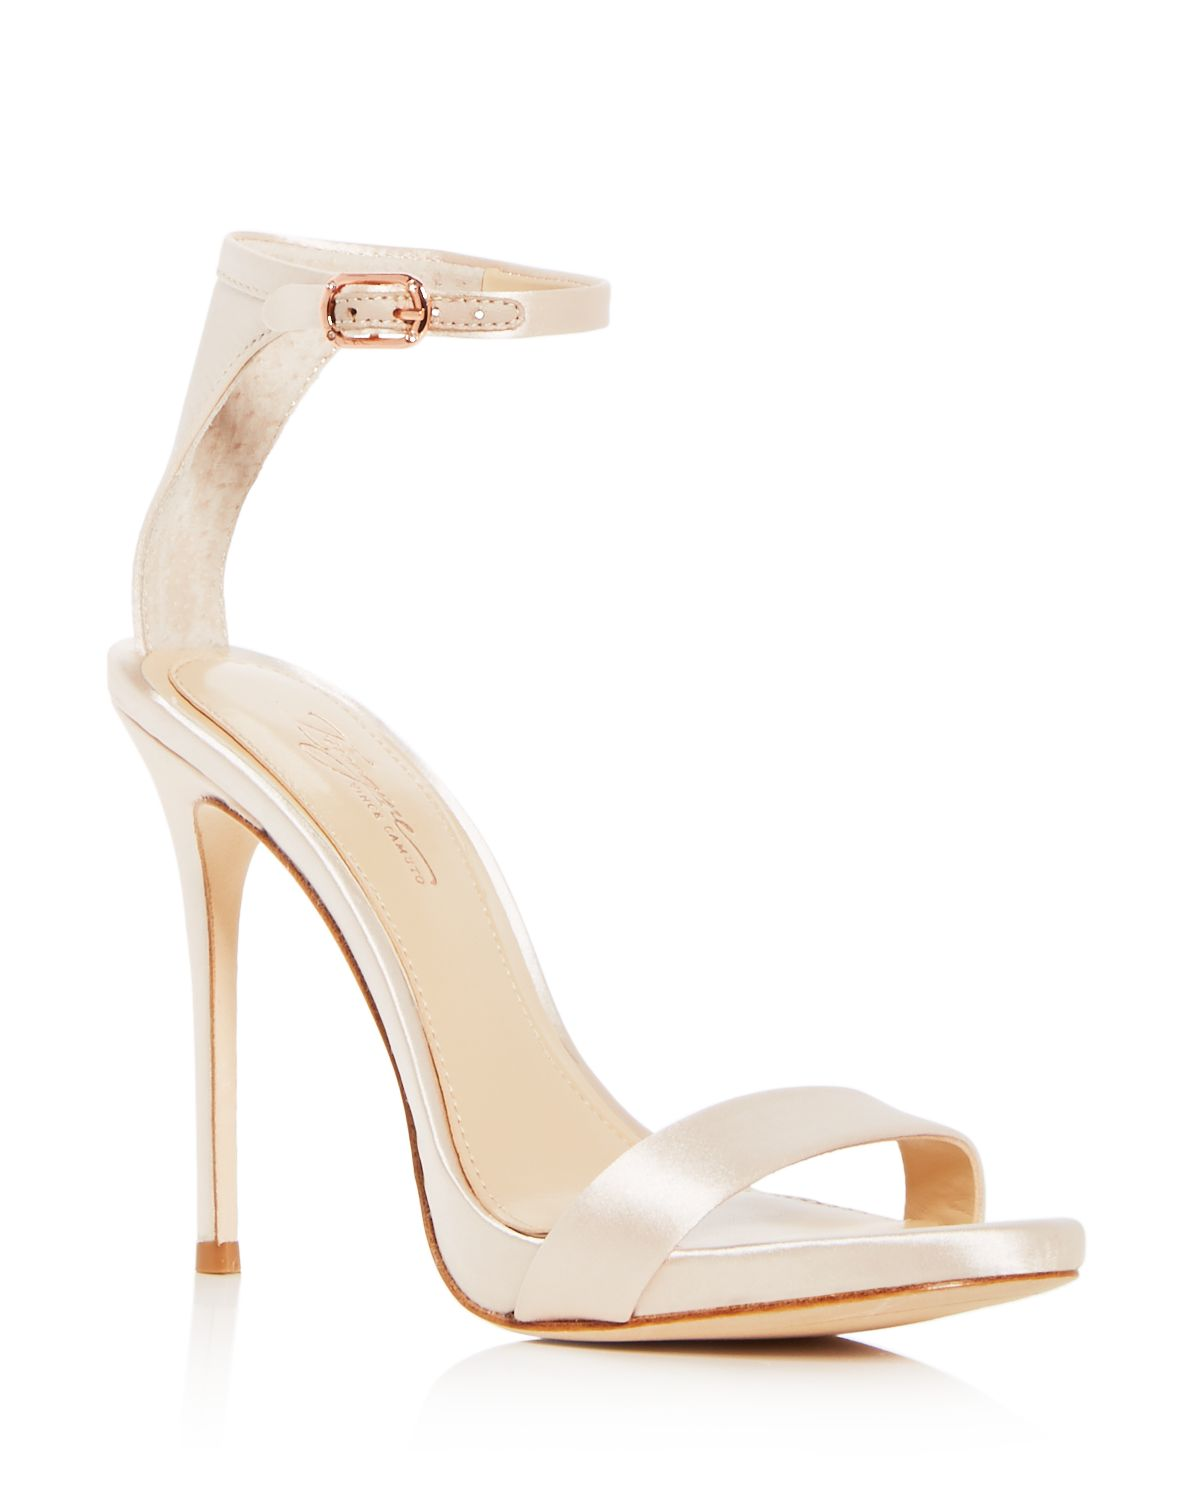 Vince Camuto Dacia Leather Ankle Strap High-Heel Sandals